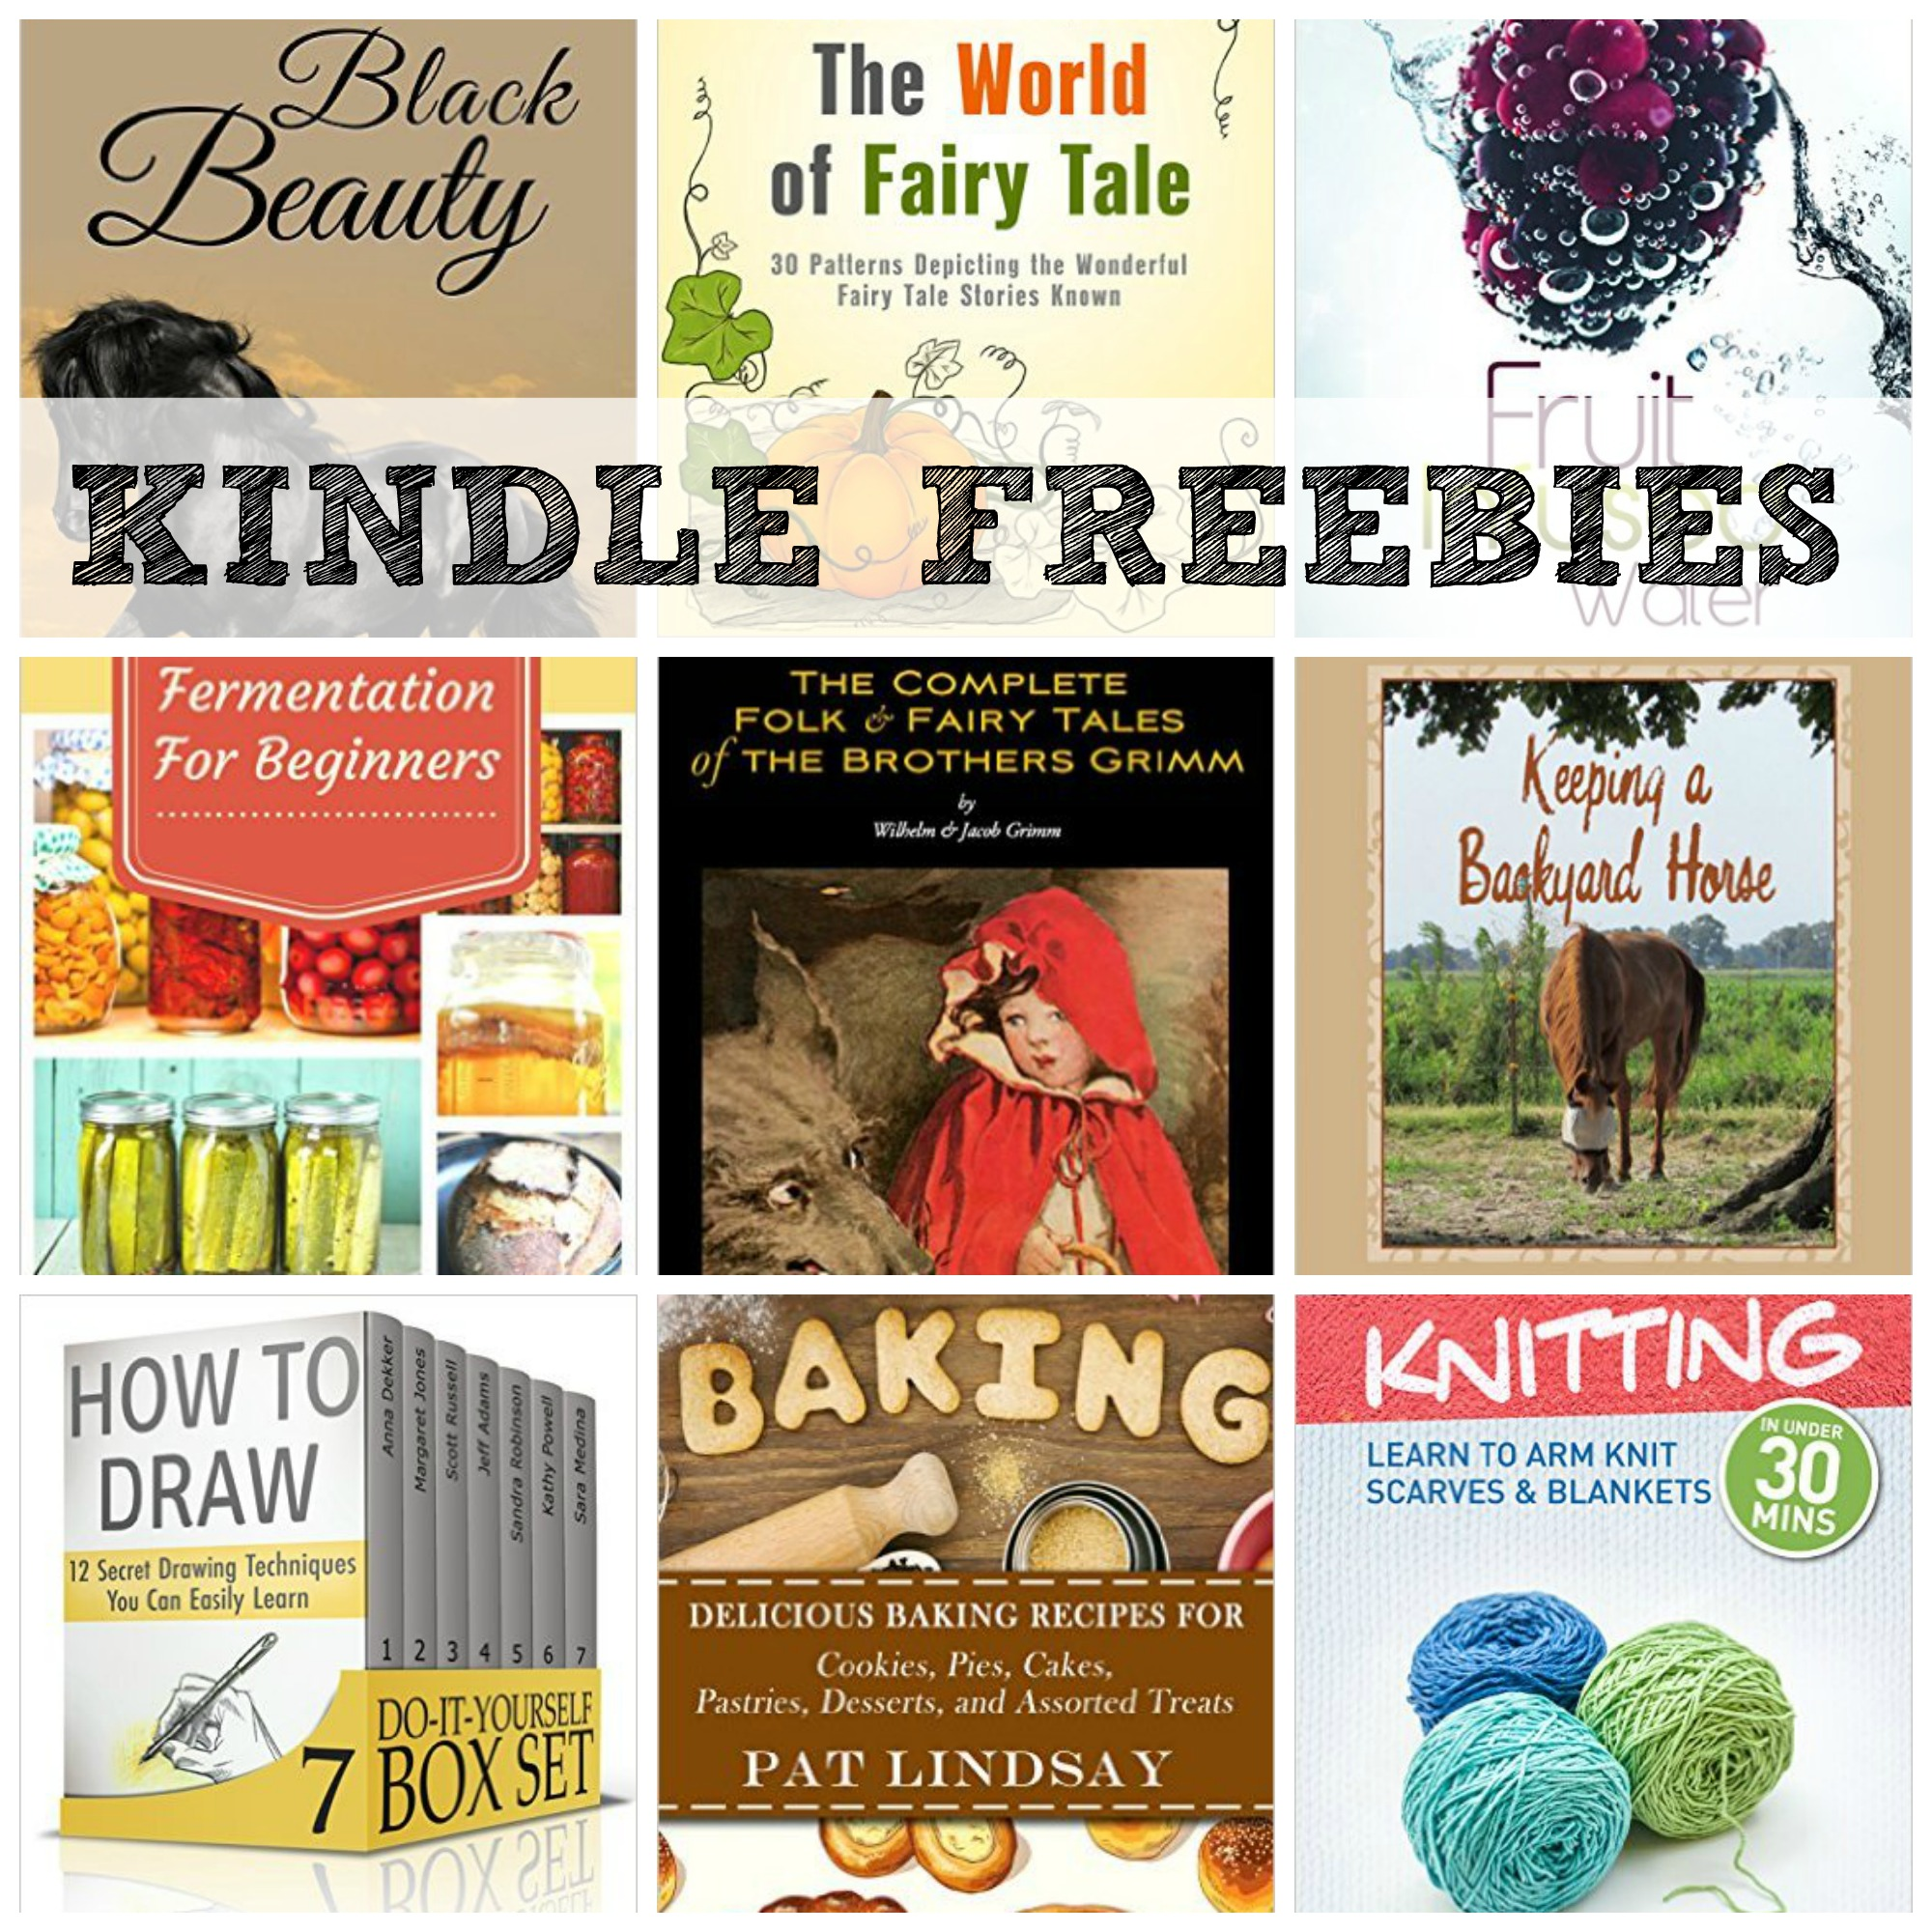 16 Kindle Freebies 365 Days Of Clean Eating Recipes